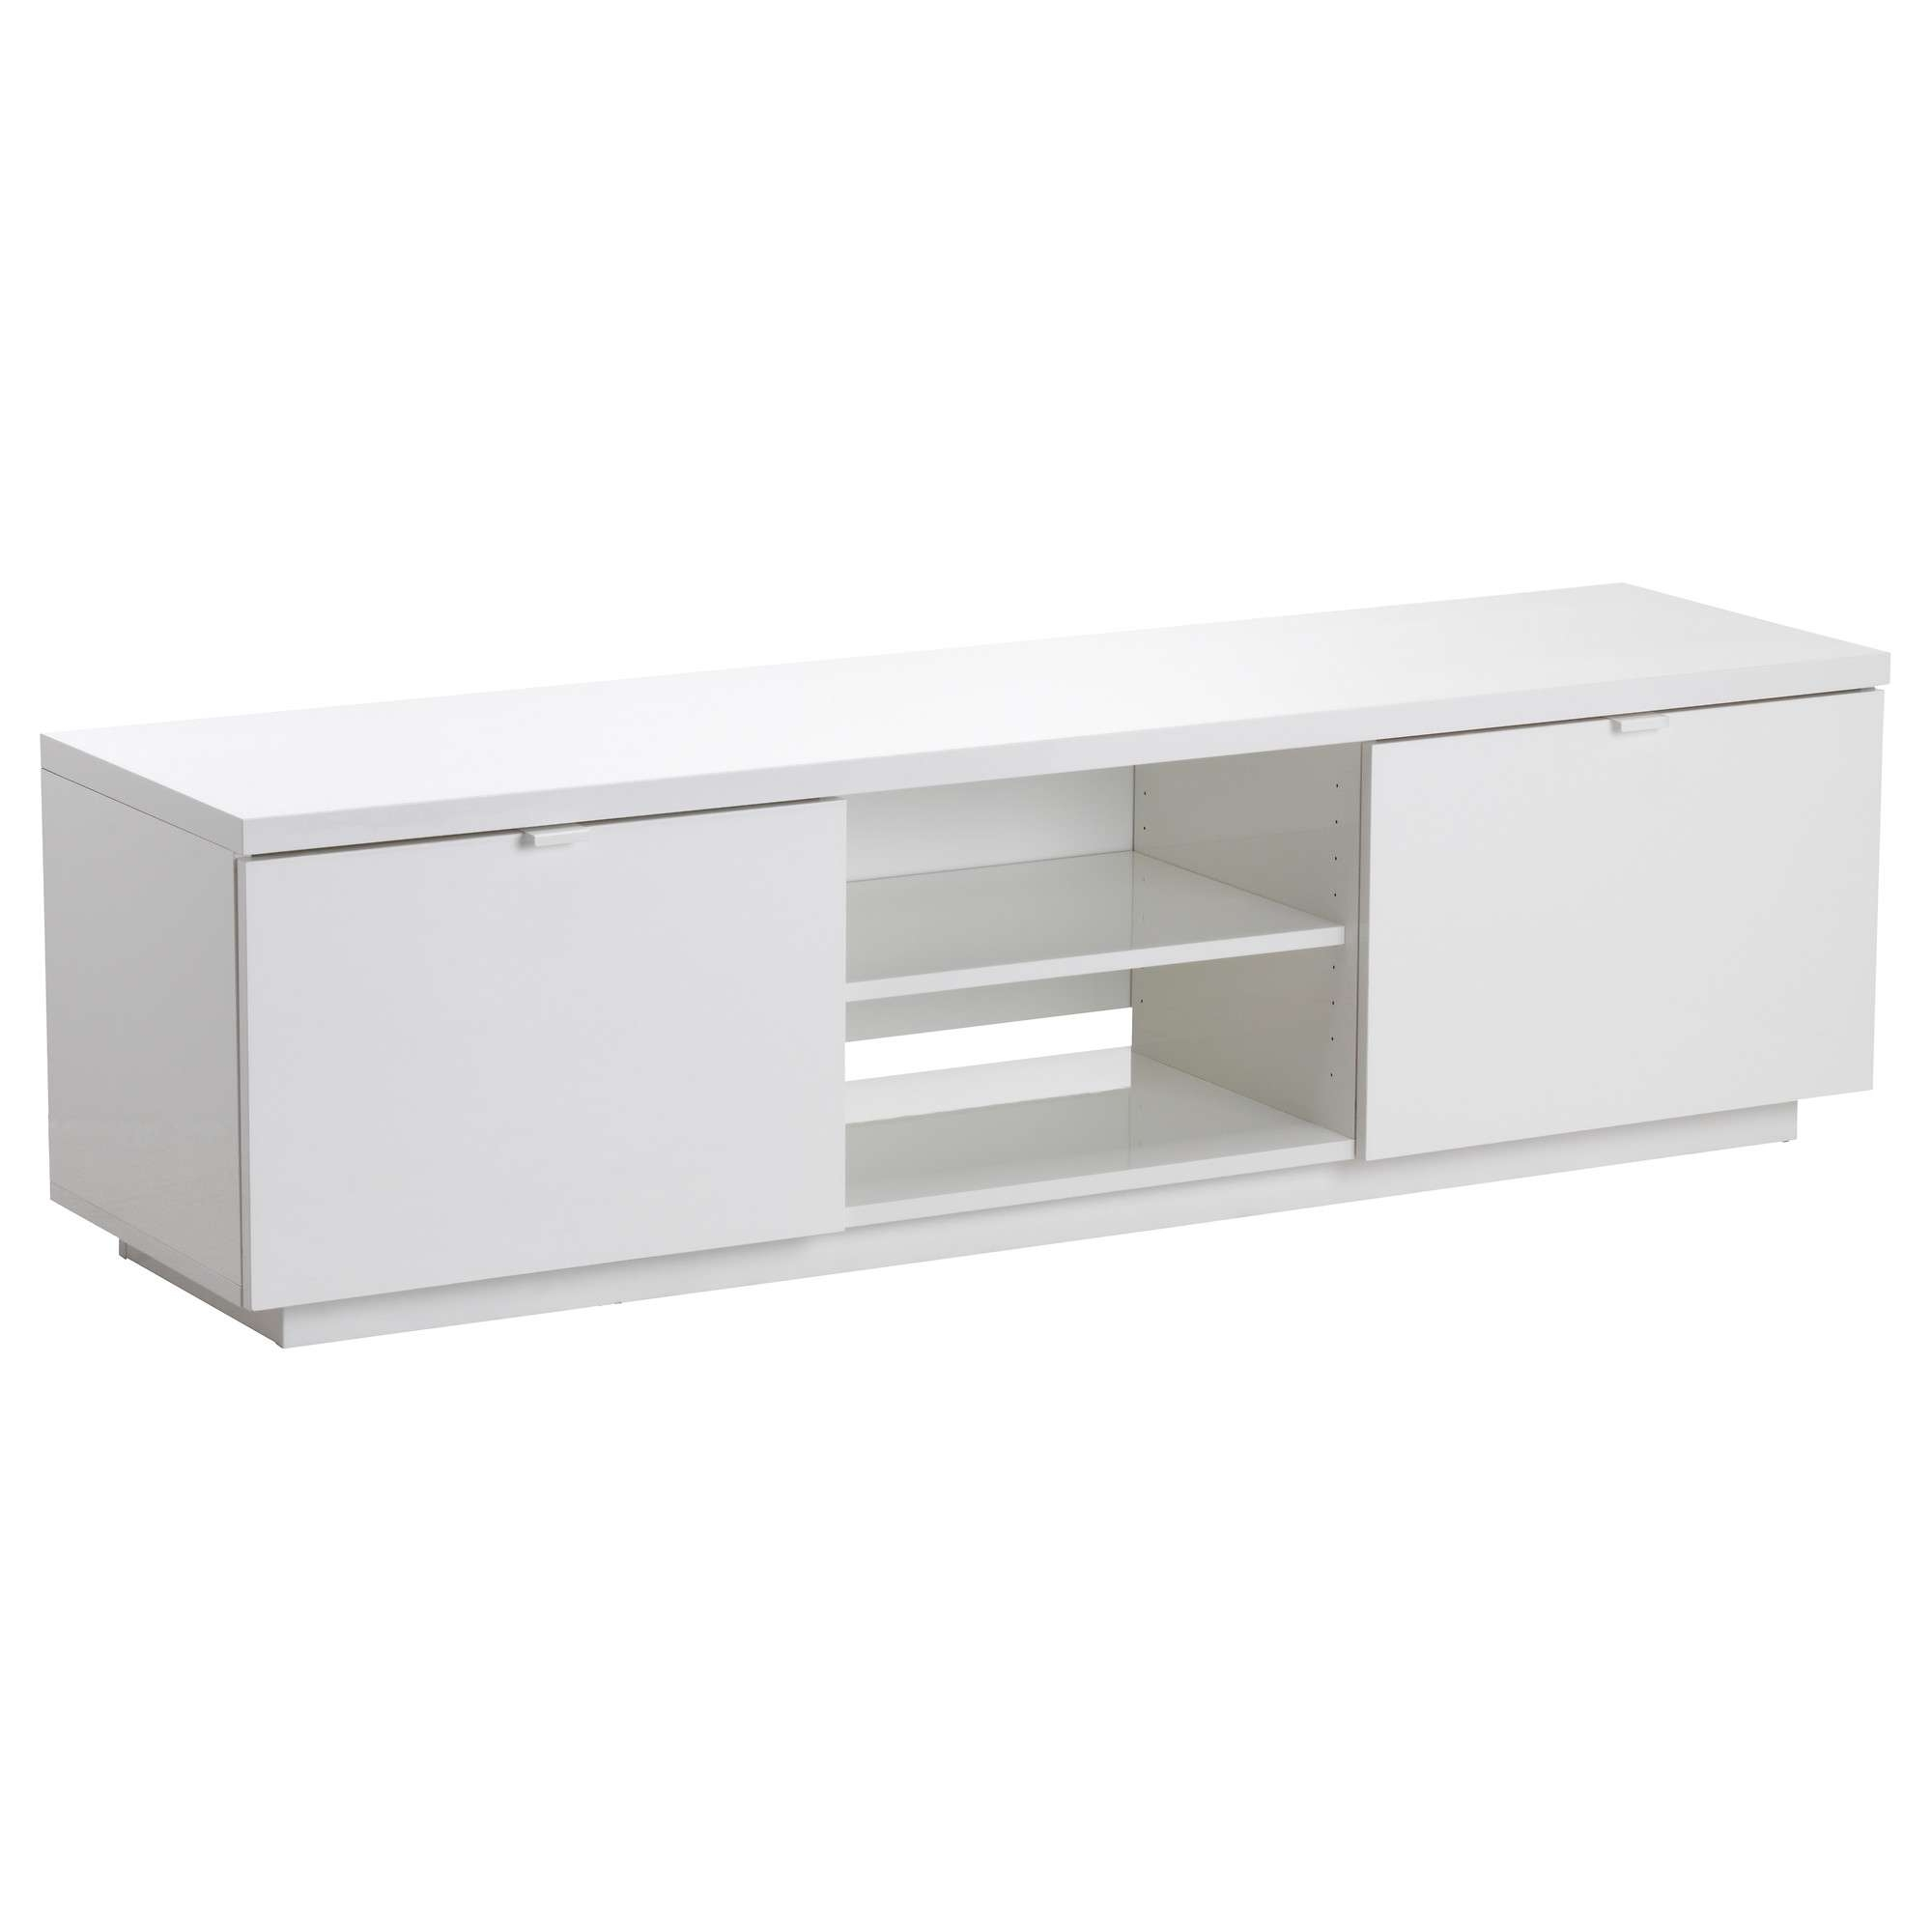 Byås Tv Unit – Ikea With Regard To High Gloss White Tv Cabinets (View 18 of 20)